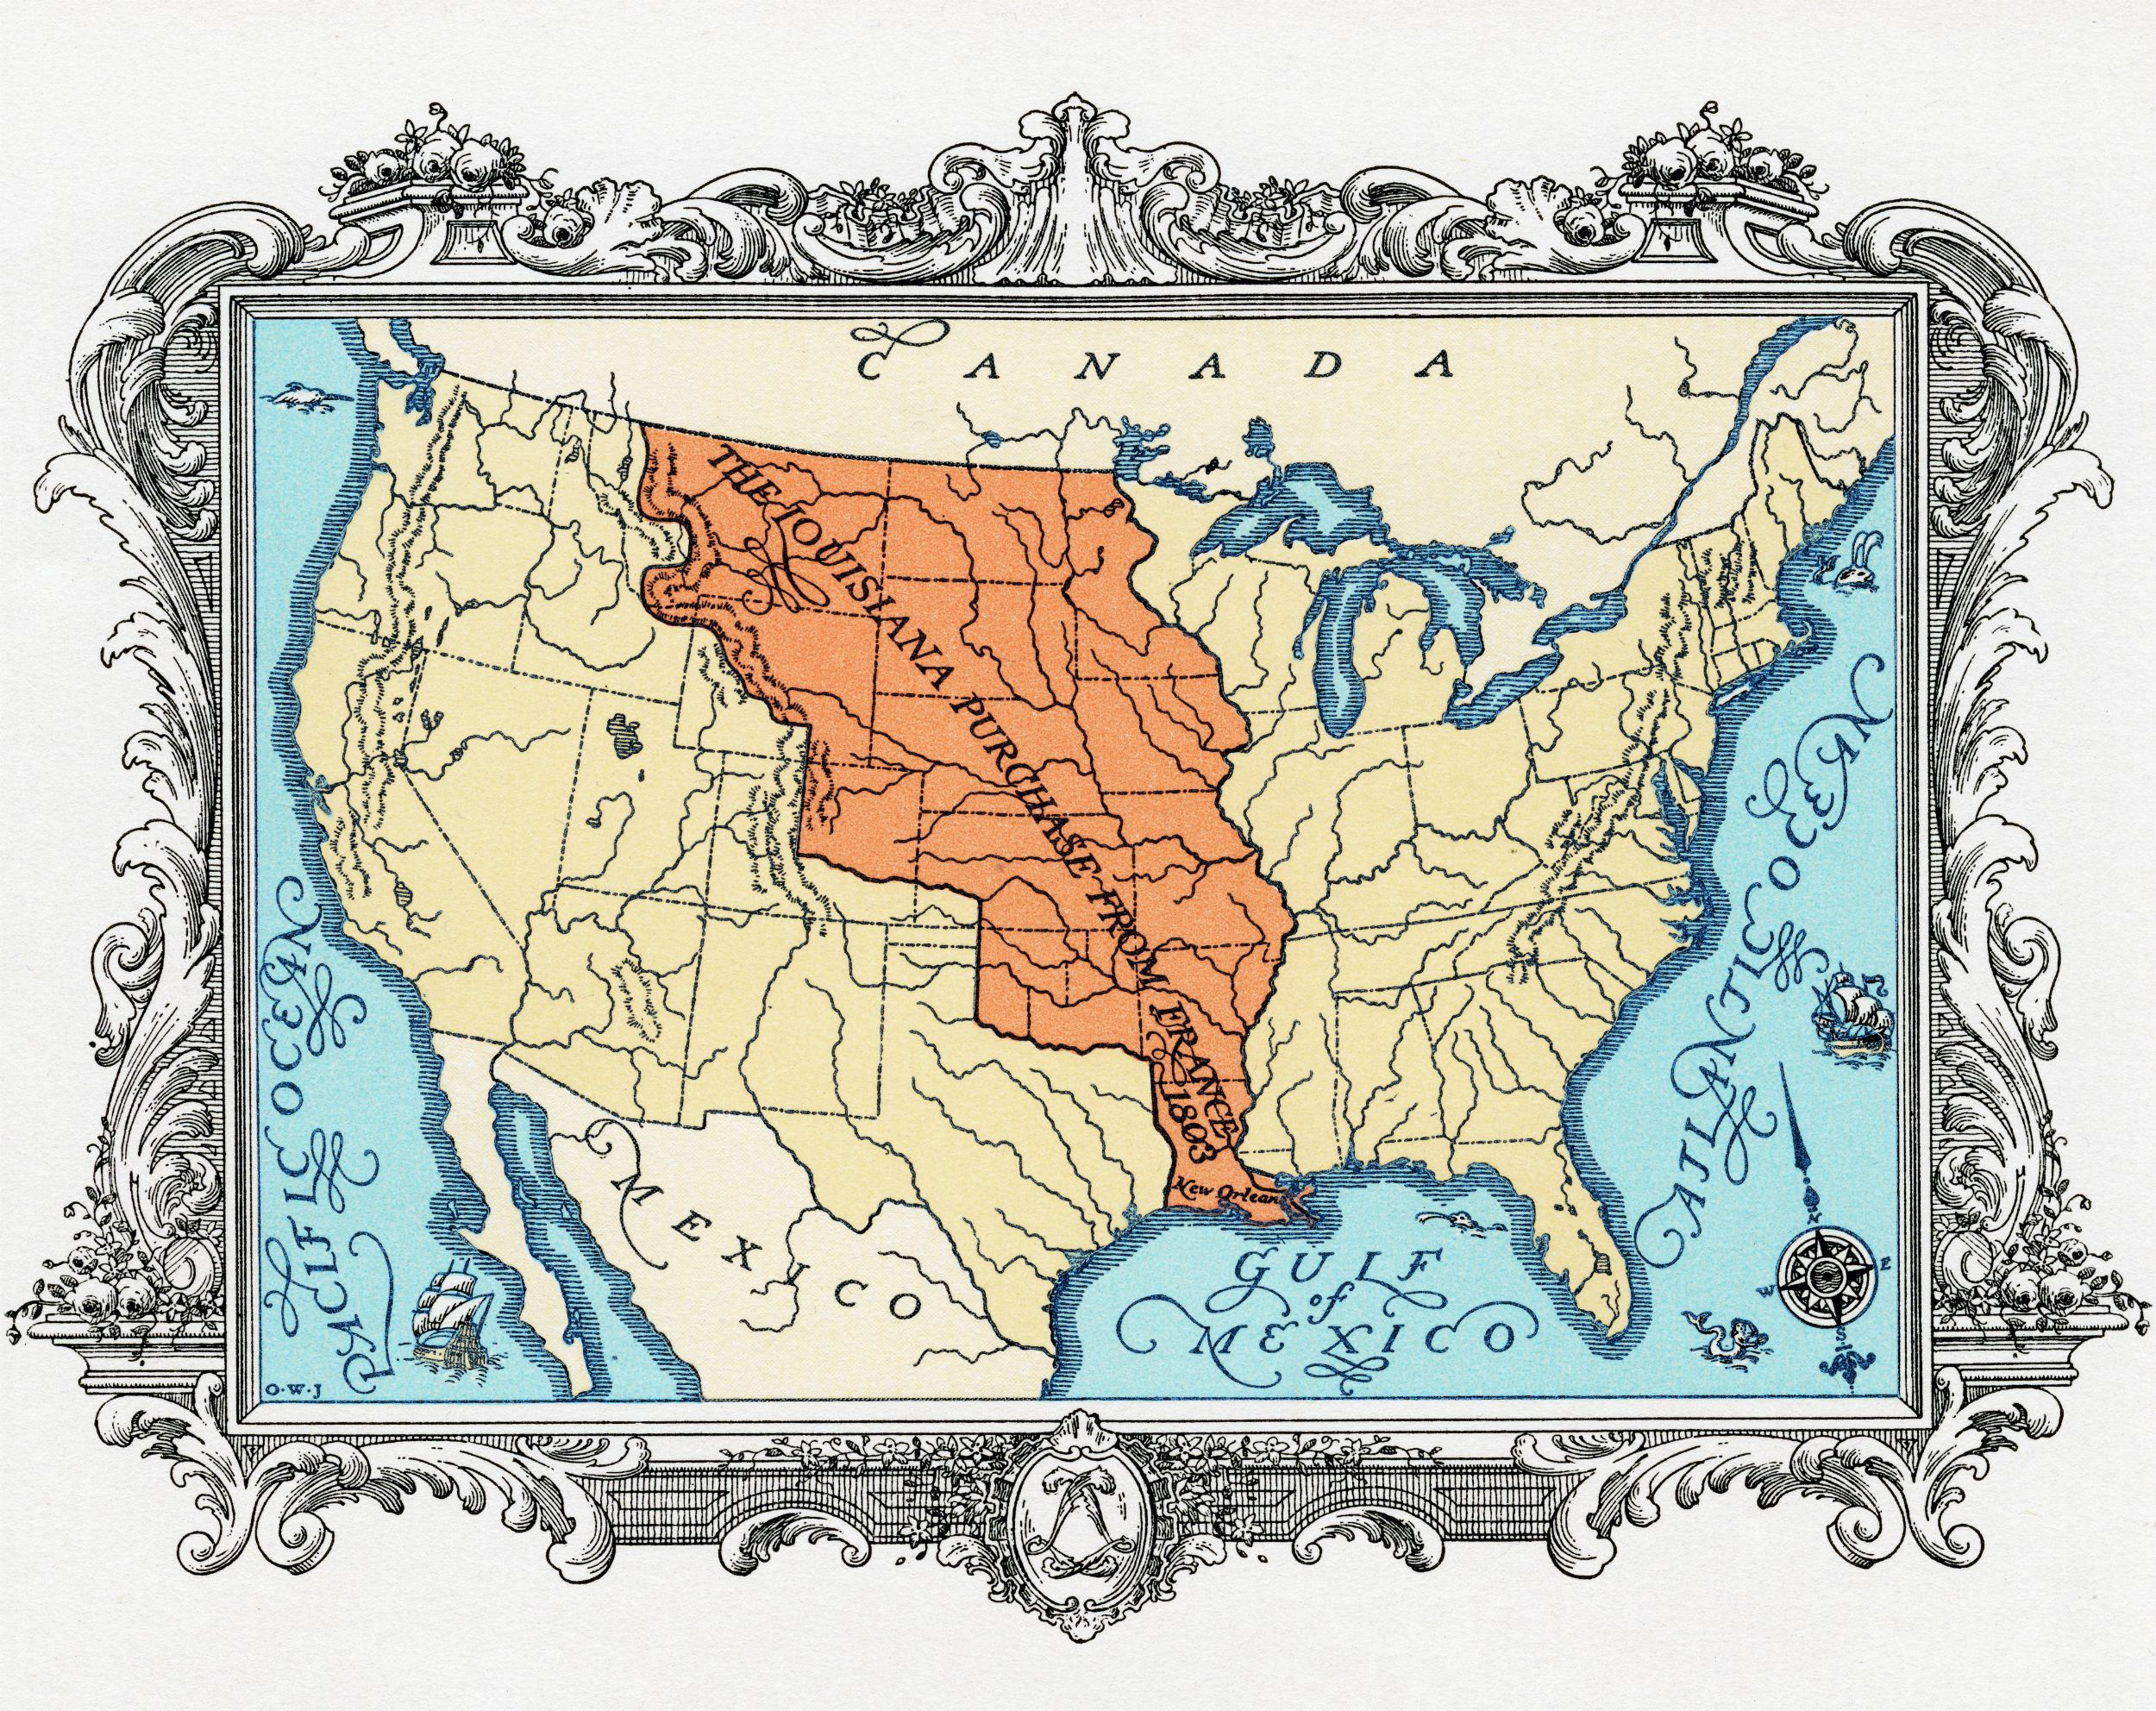 Worksheets Louisiana Purchase Map Worksheet thomas jefferson and the louisiana purchase